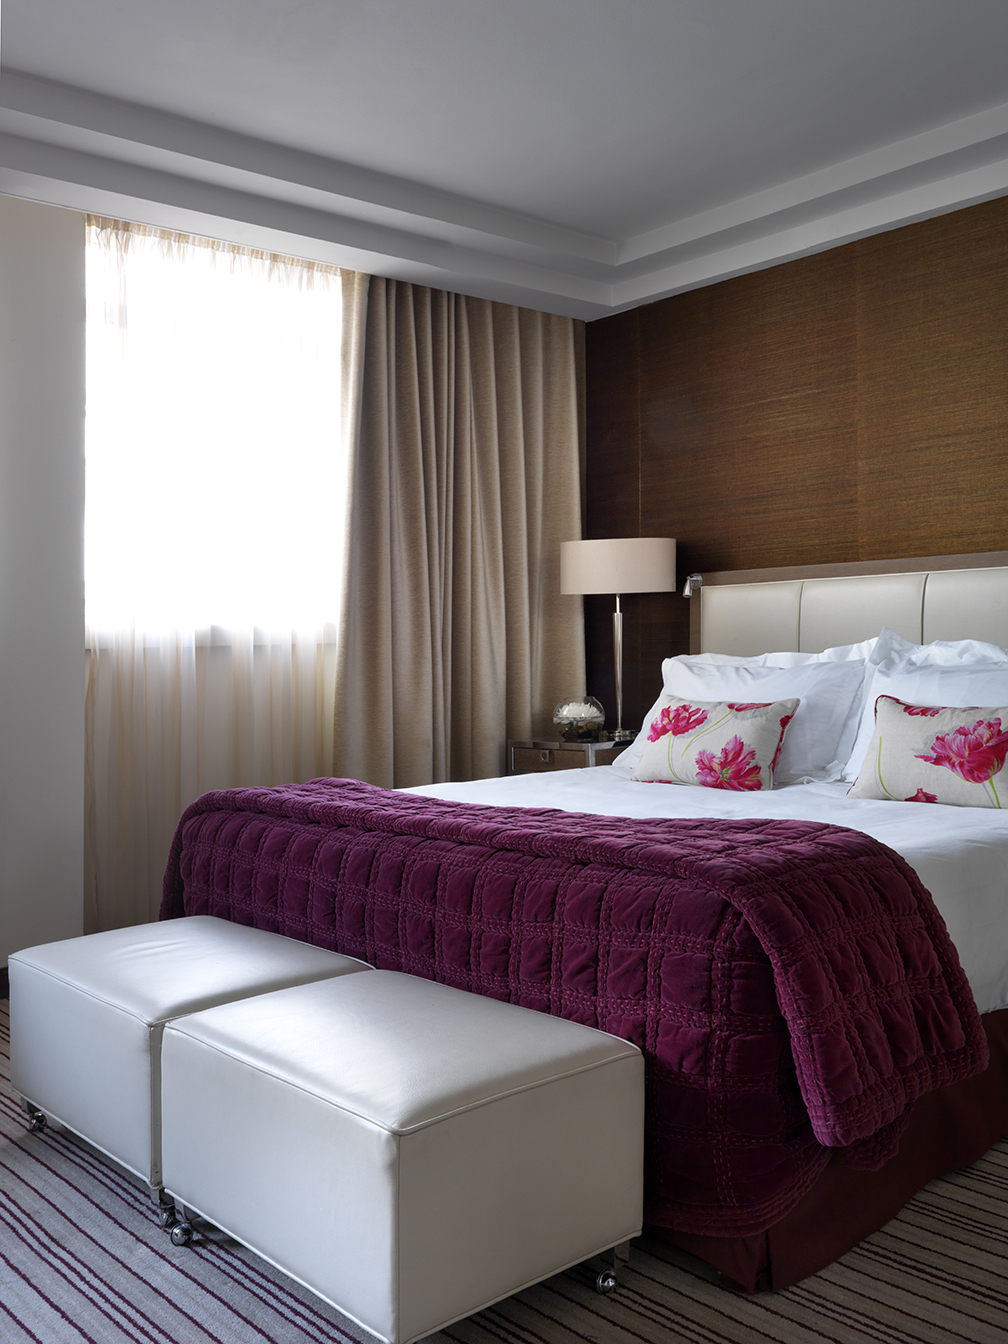 4 Star Hotel Rooms In London City Centre